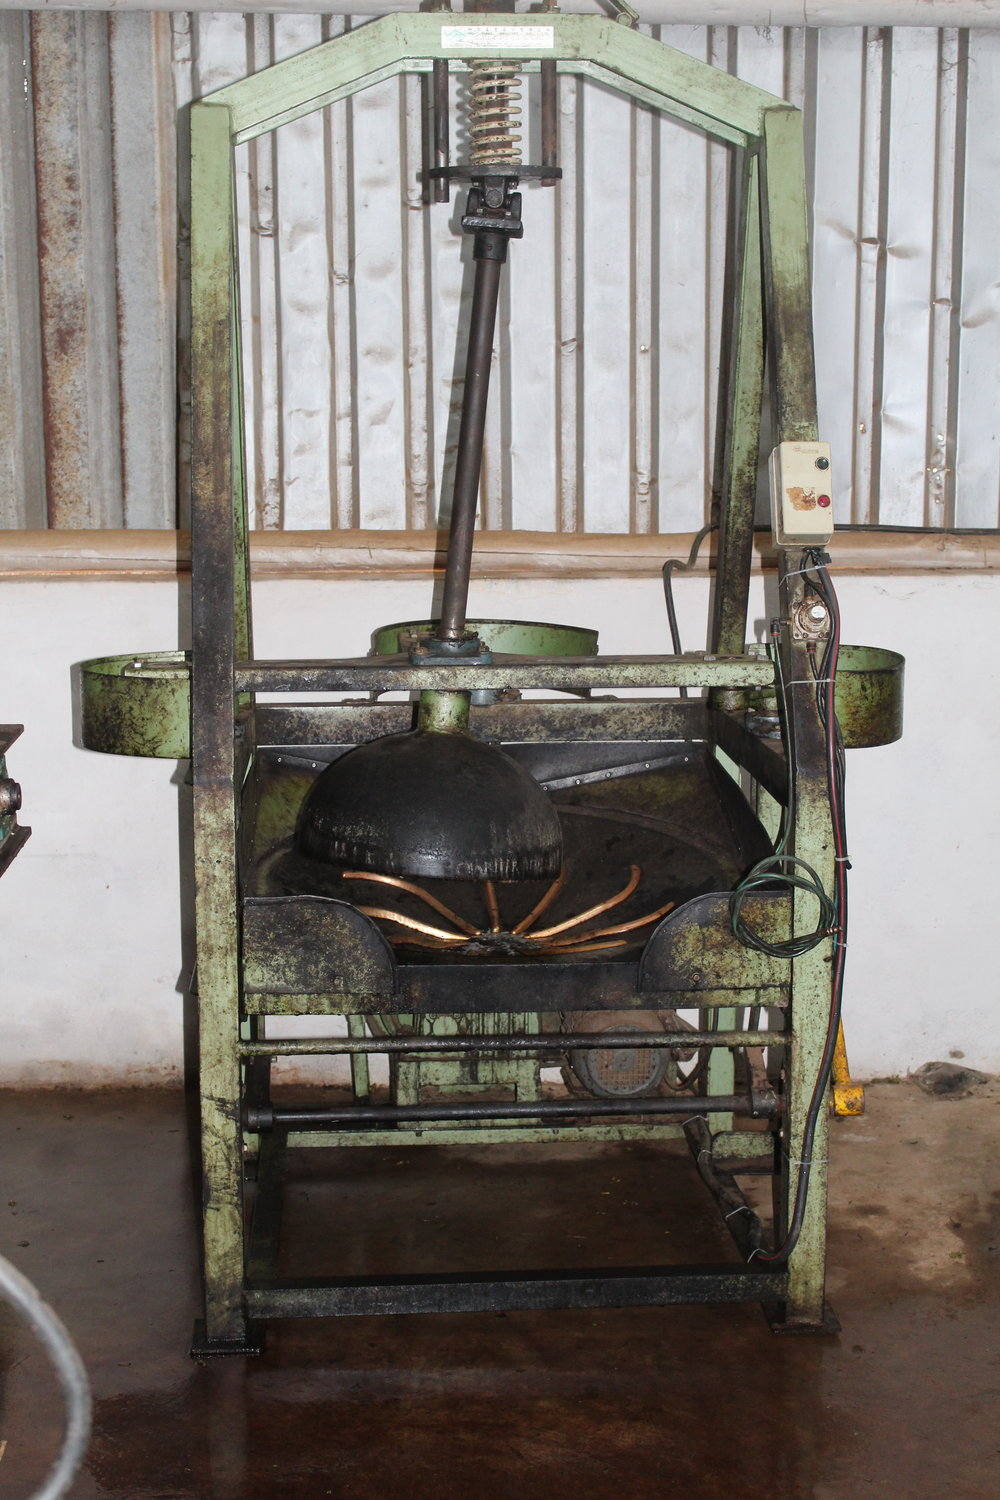 Some orthodox rollers. These machines make larger tea leaf grades and specialty teas.